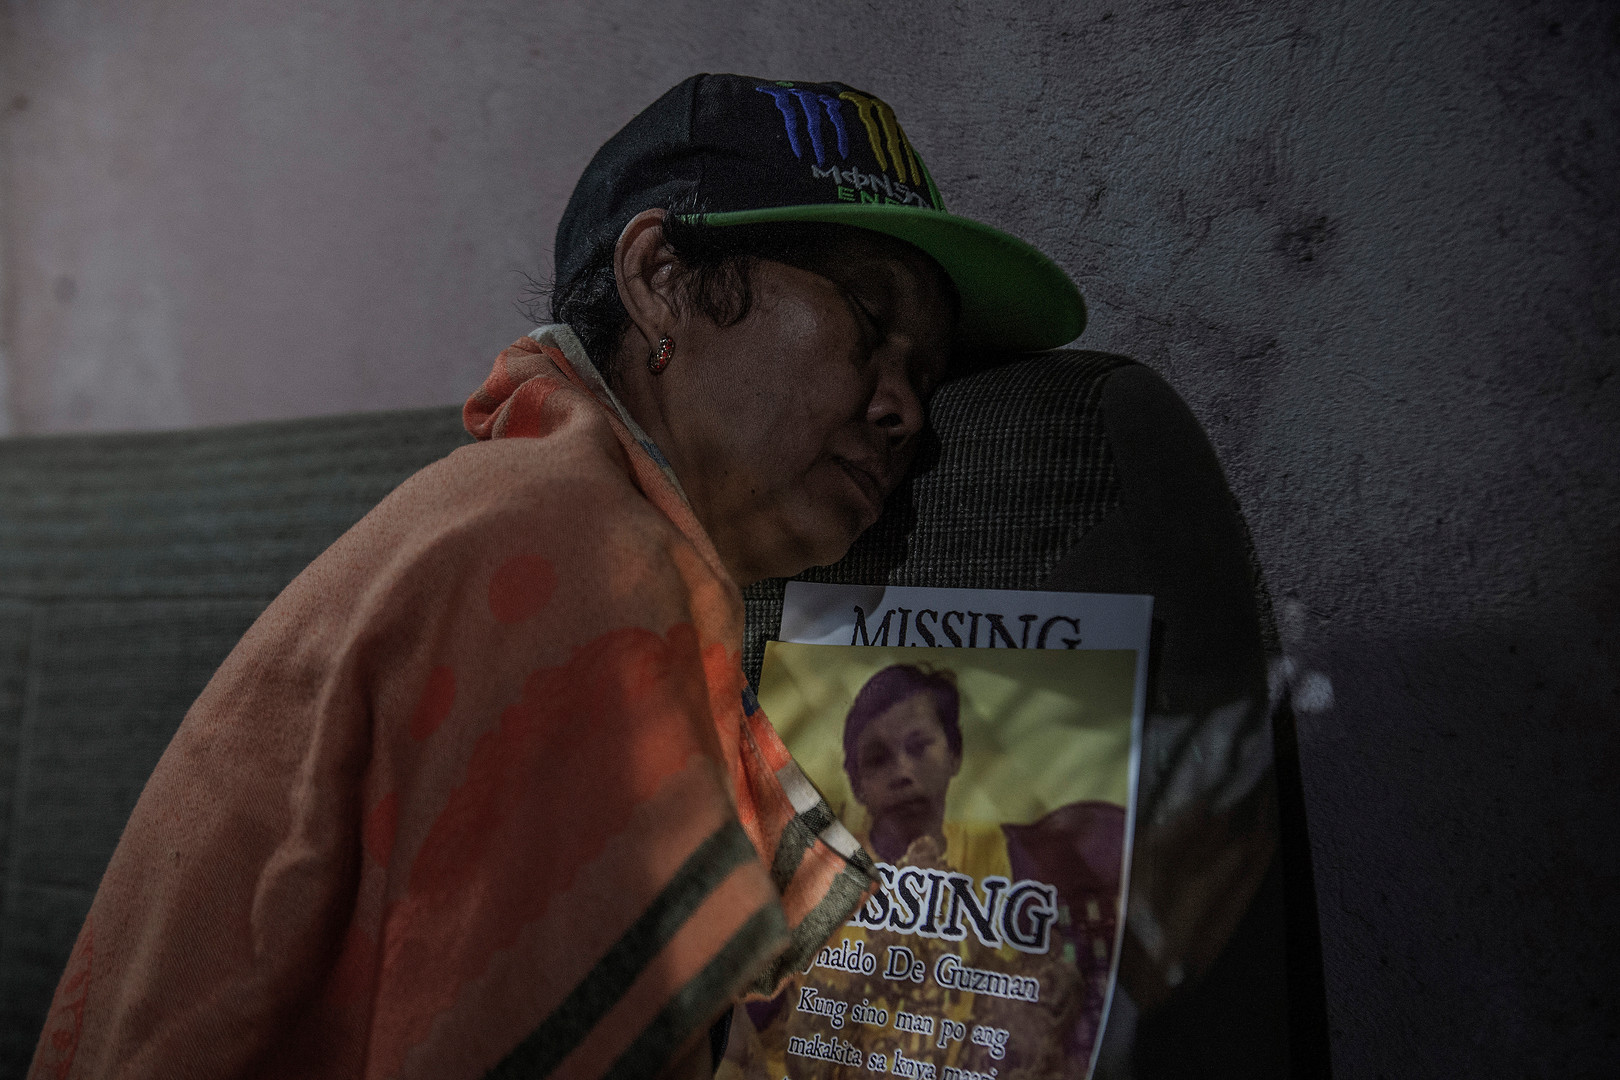 "Lina De Guzman holds a missing sign for his 14-year-old son Reynaldo ""Kulot"" De Guzman. Kulot was last seen with his neighbor Carl Angelo Arnaiz on August 18, 2017 in Cainta, Rizal. Hours after they went missing, Carl allegedly robbed a taxi and figured in a shootout with police officers ten kilometers away in Caloocan. Police say packets of shabu and marijuana were recovered from Arnaiz. Kulot remained missing until 20 days later when his body was found some 100 kilometers away floating in a creek in Gapan, Nueva Ecija. His body bore 30 stab wounds and his head was wrapped in tape."